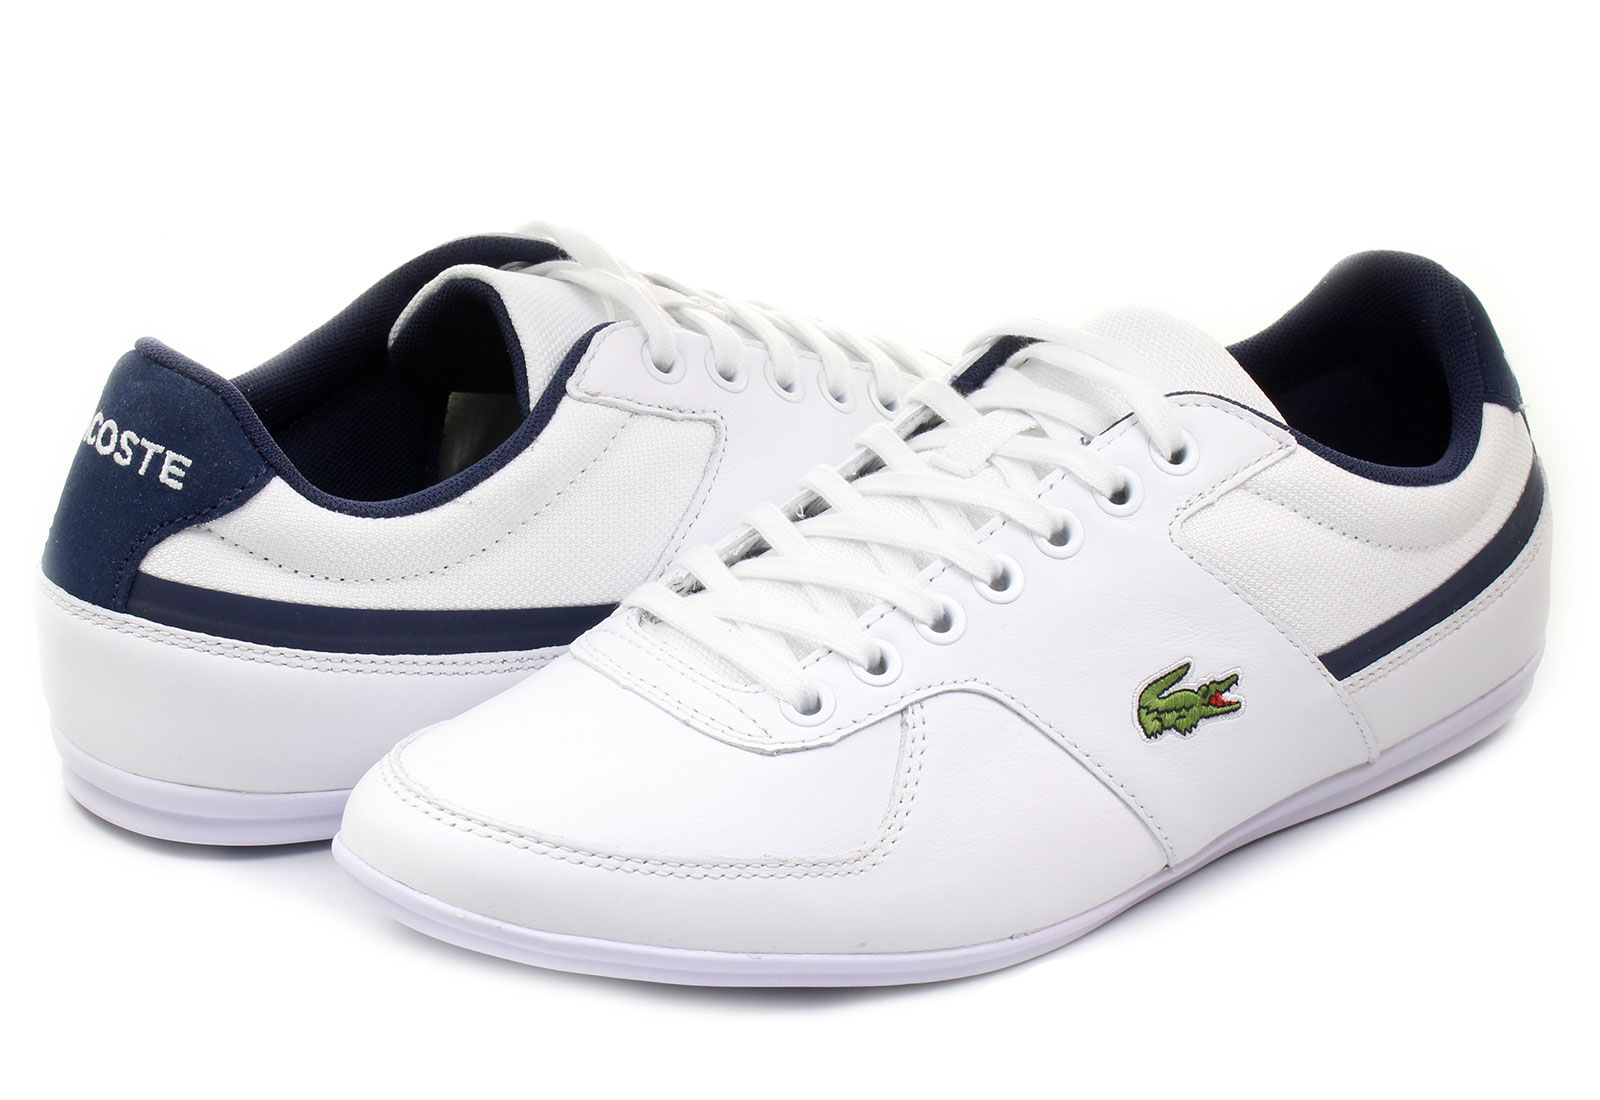 Lacoste Shoes Size